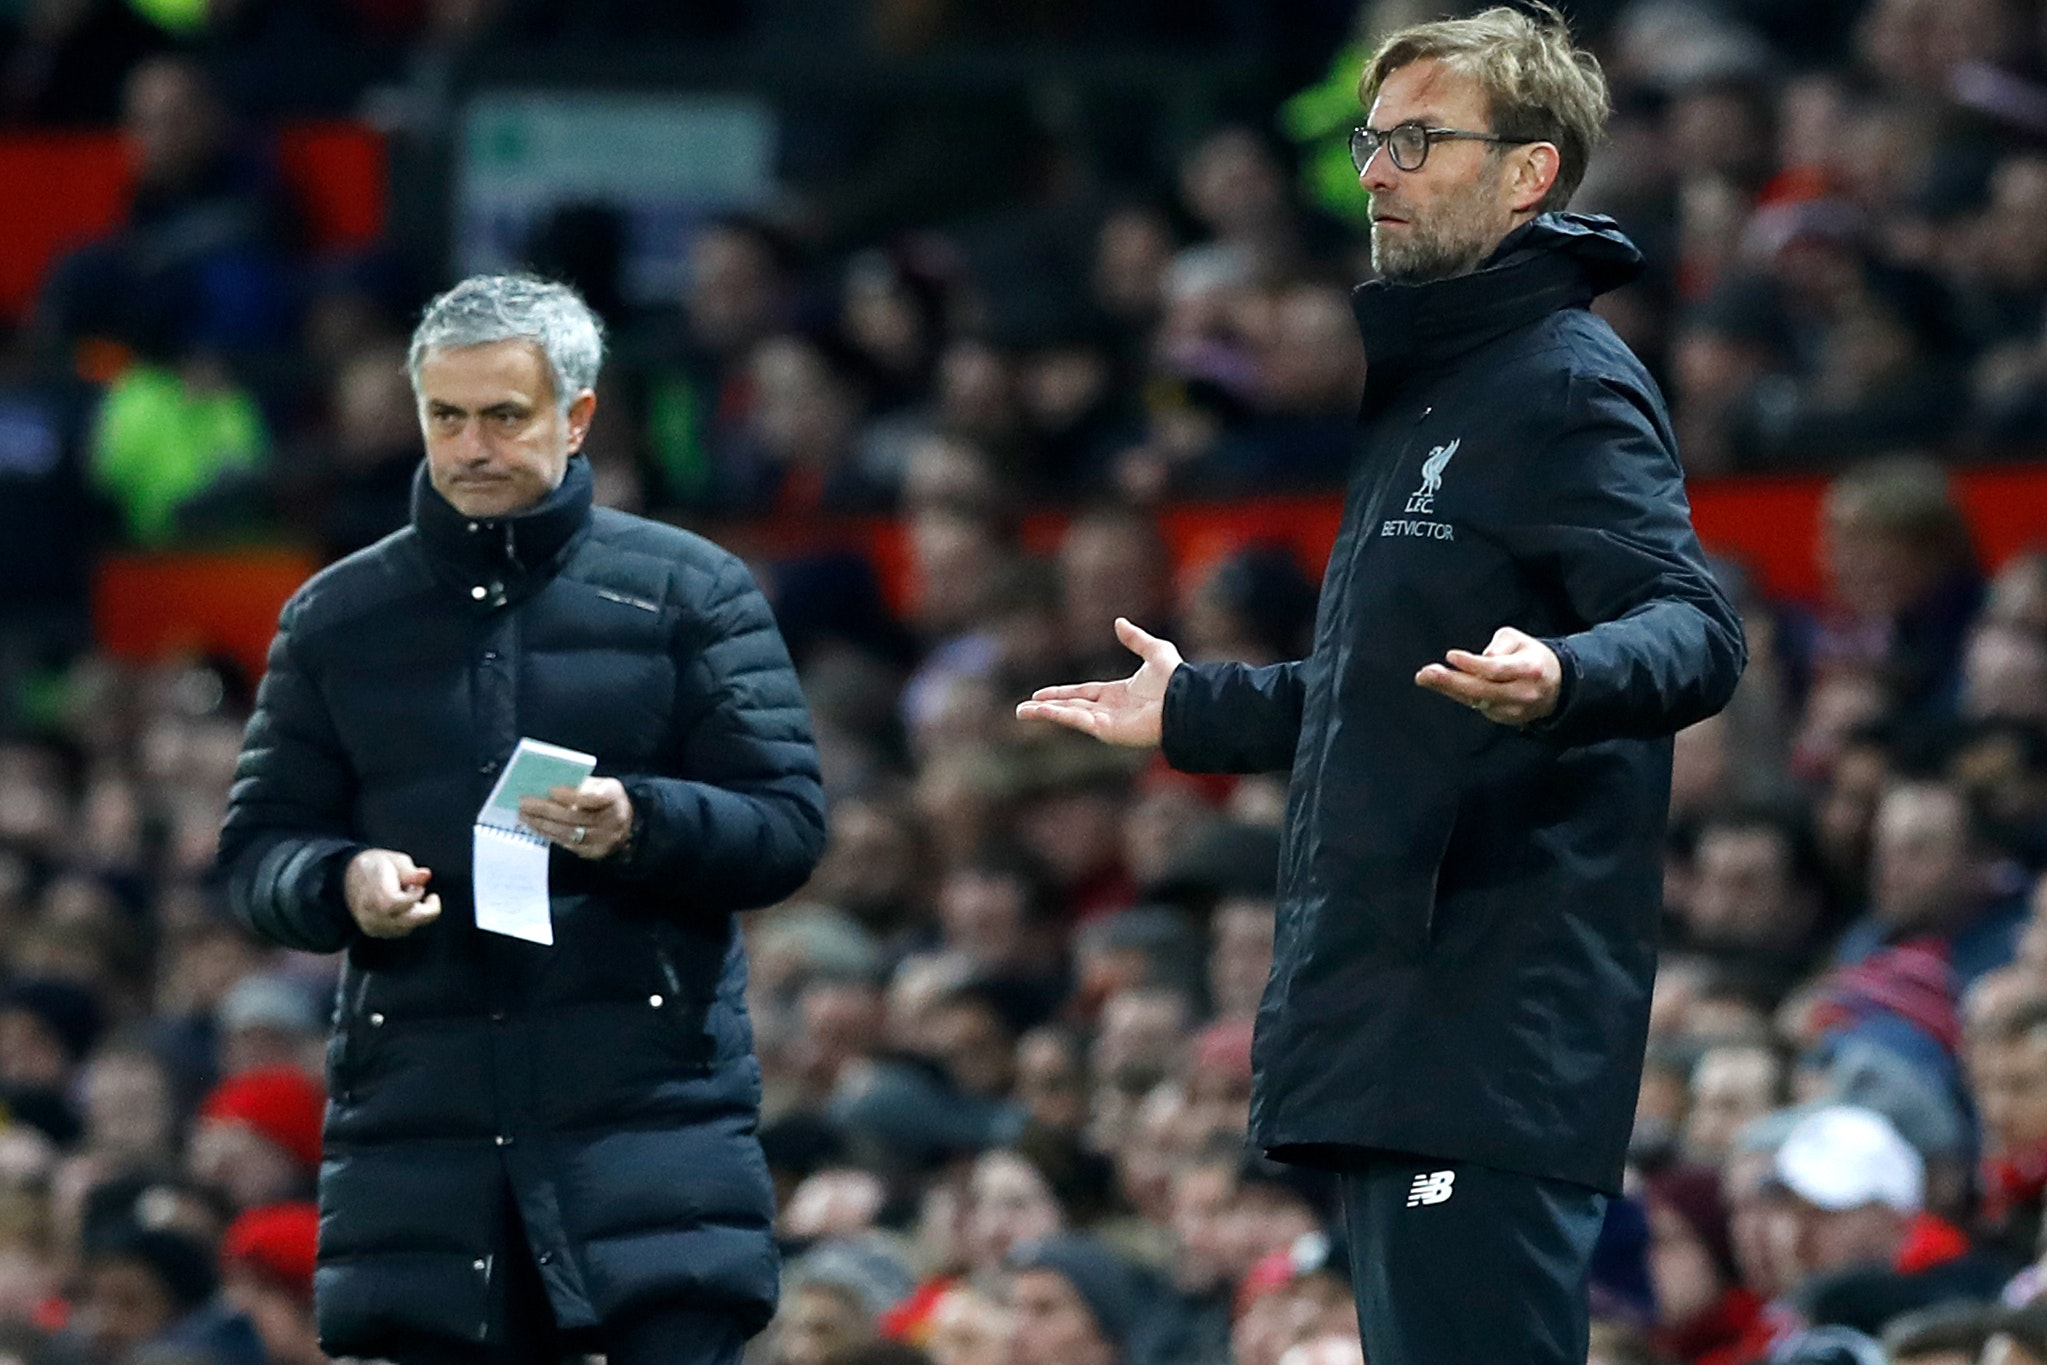 Jurgen Klopp, right, and Jose Mourinho